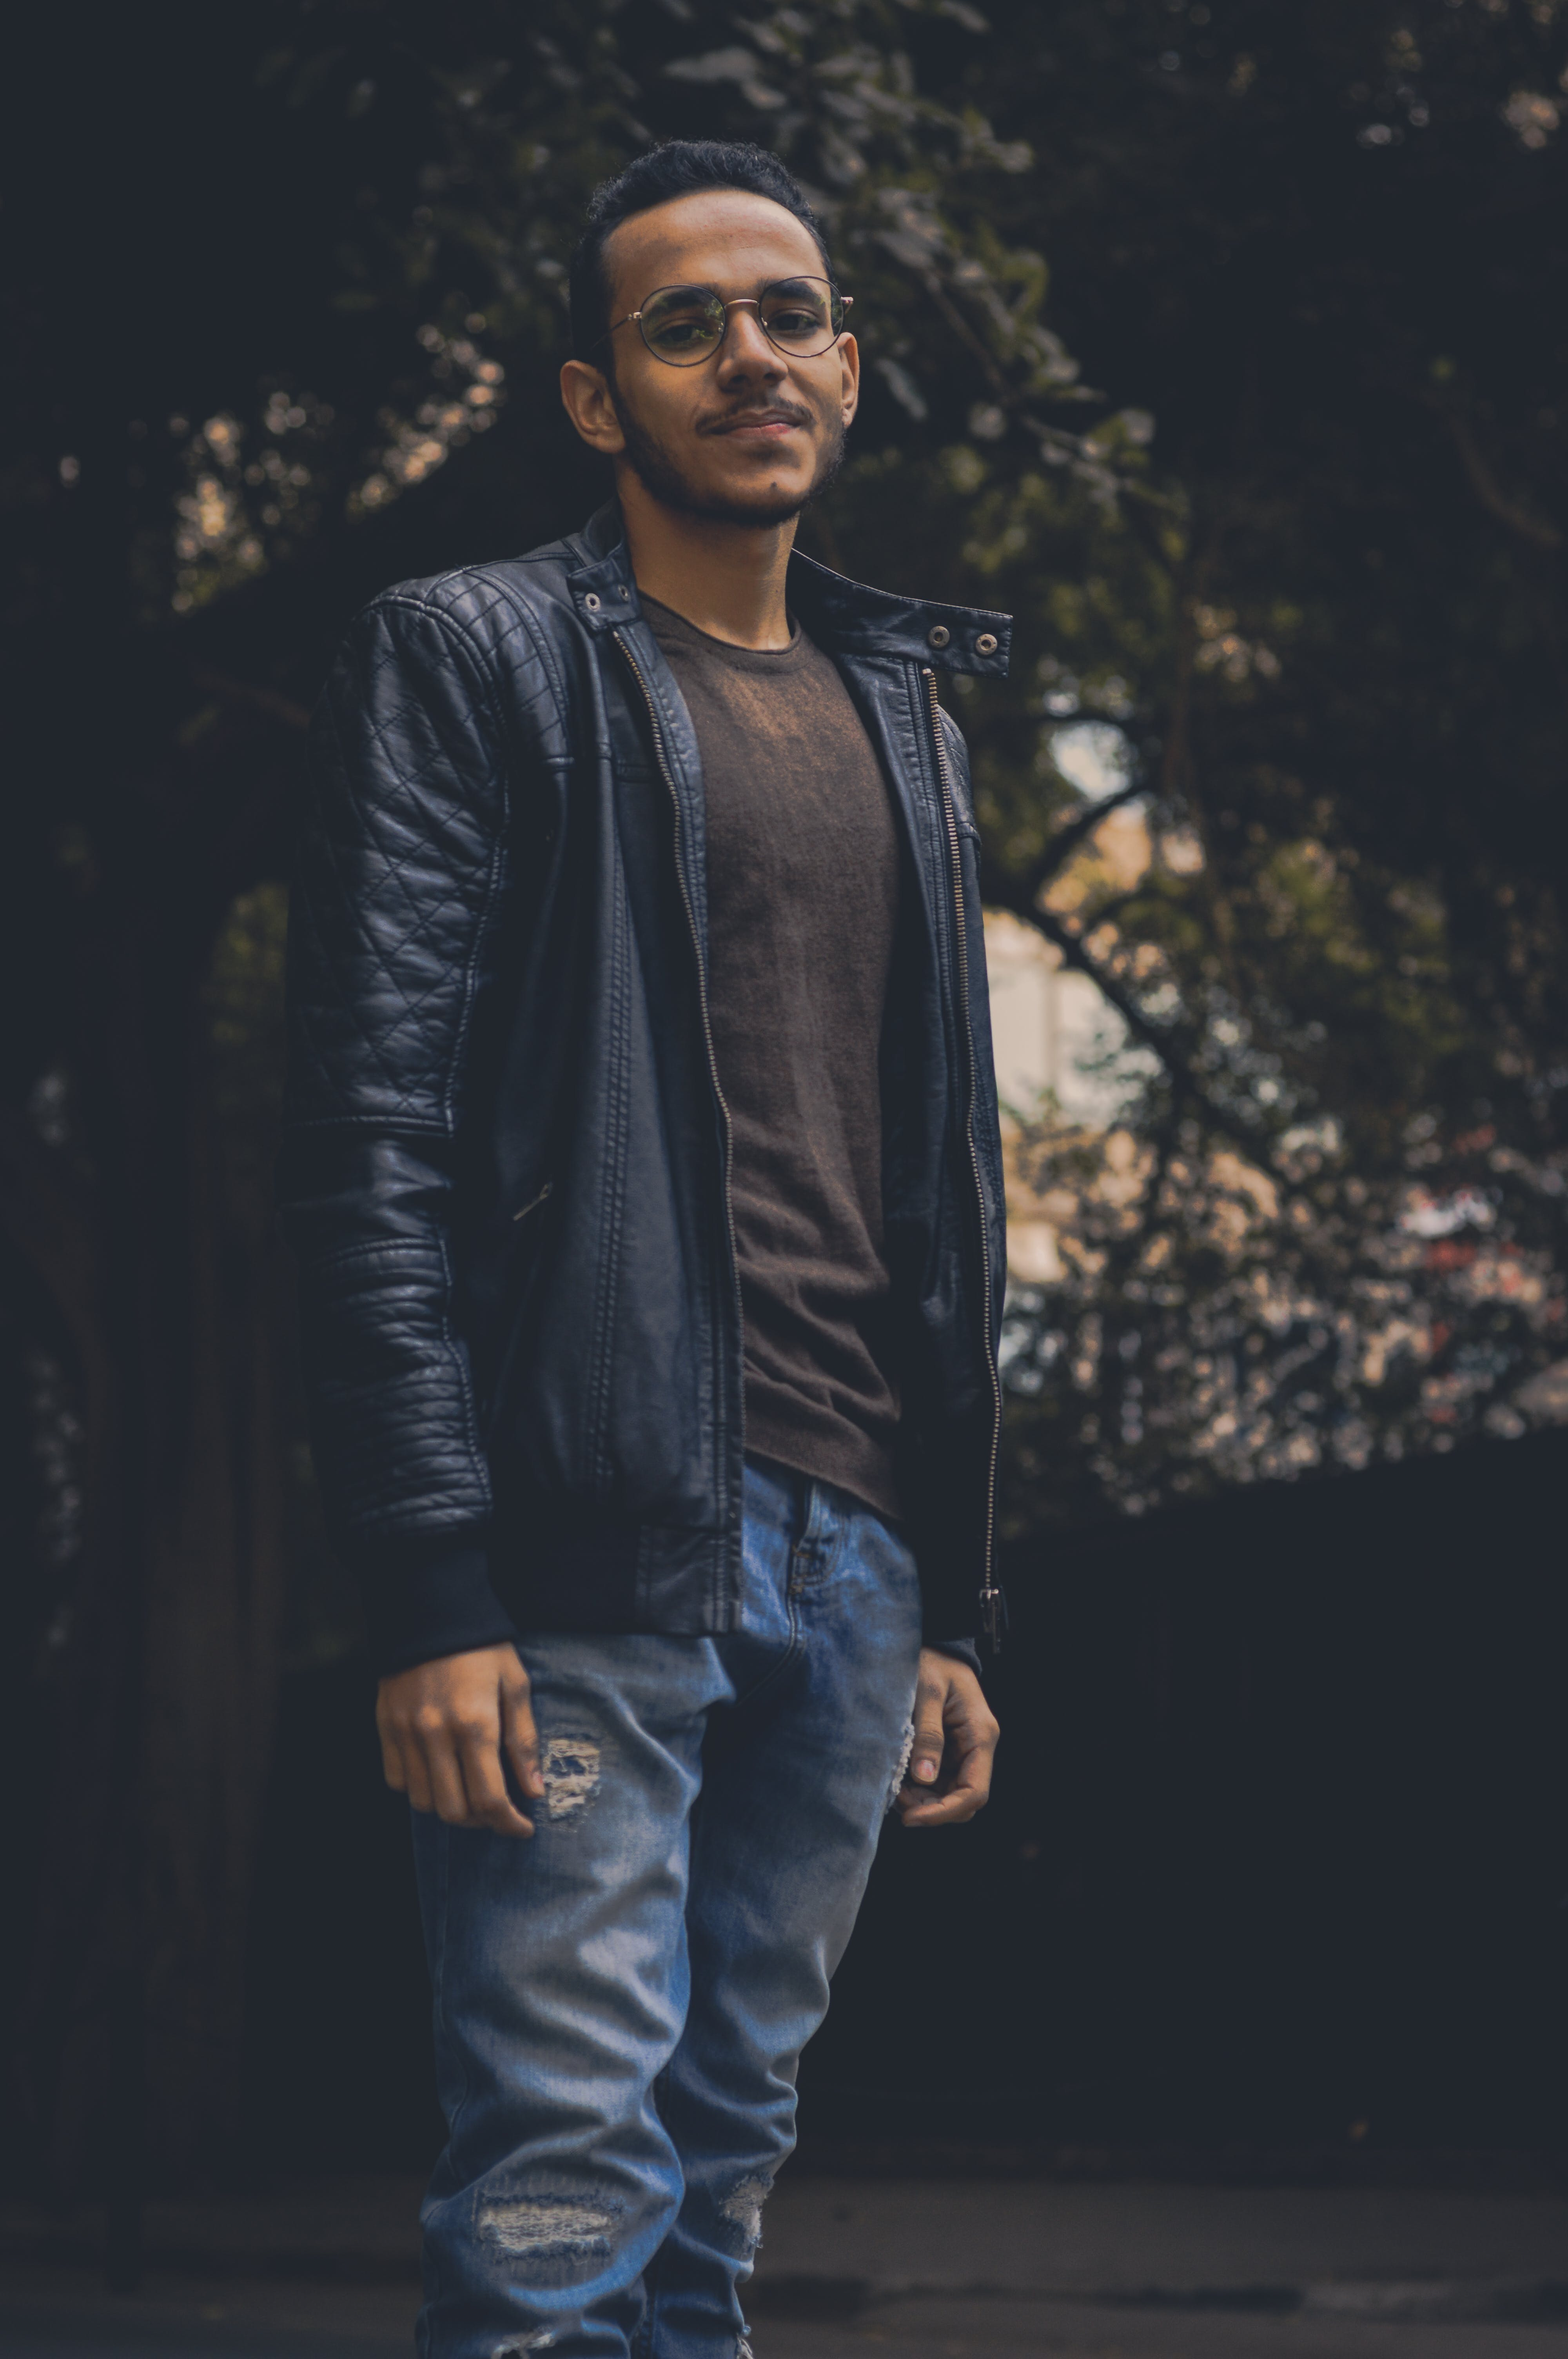 Man in Brown Shirt and Black Leather Zip-up Jacket and Blue Denim Pants